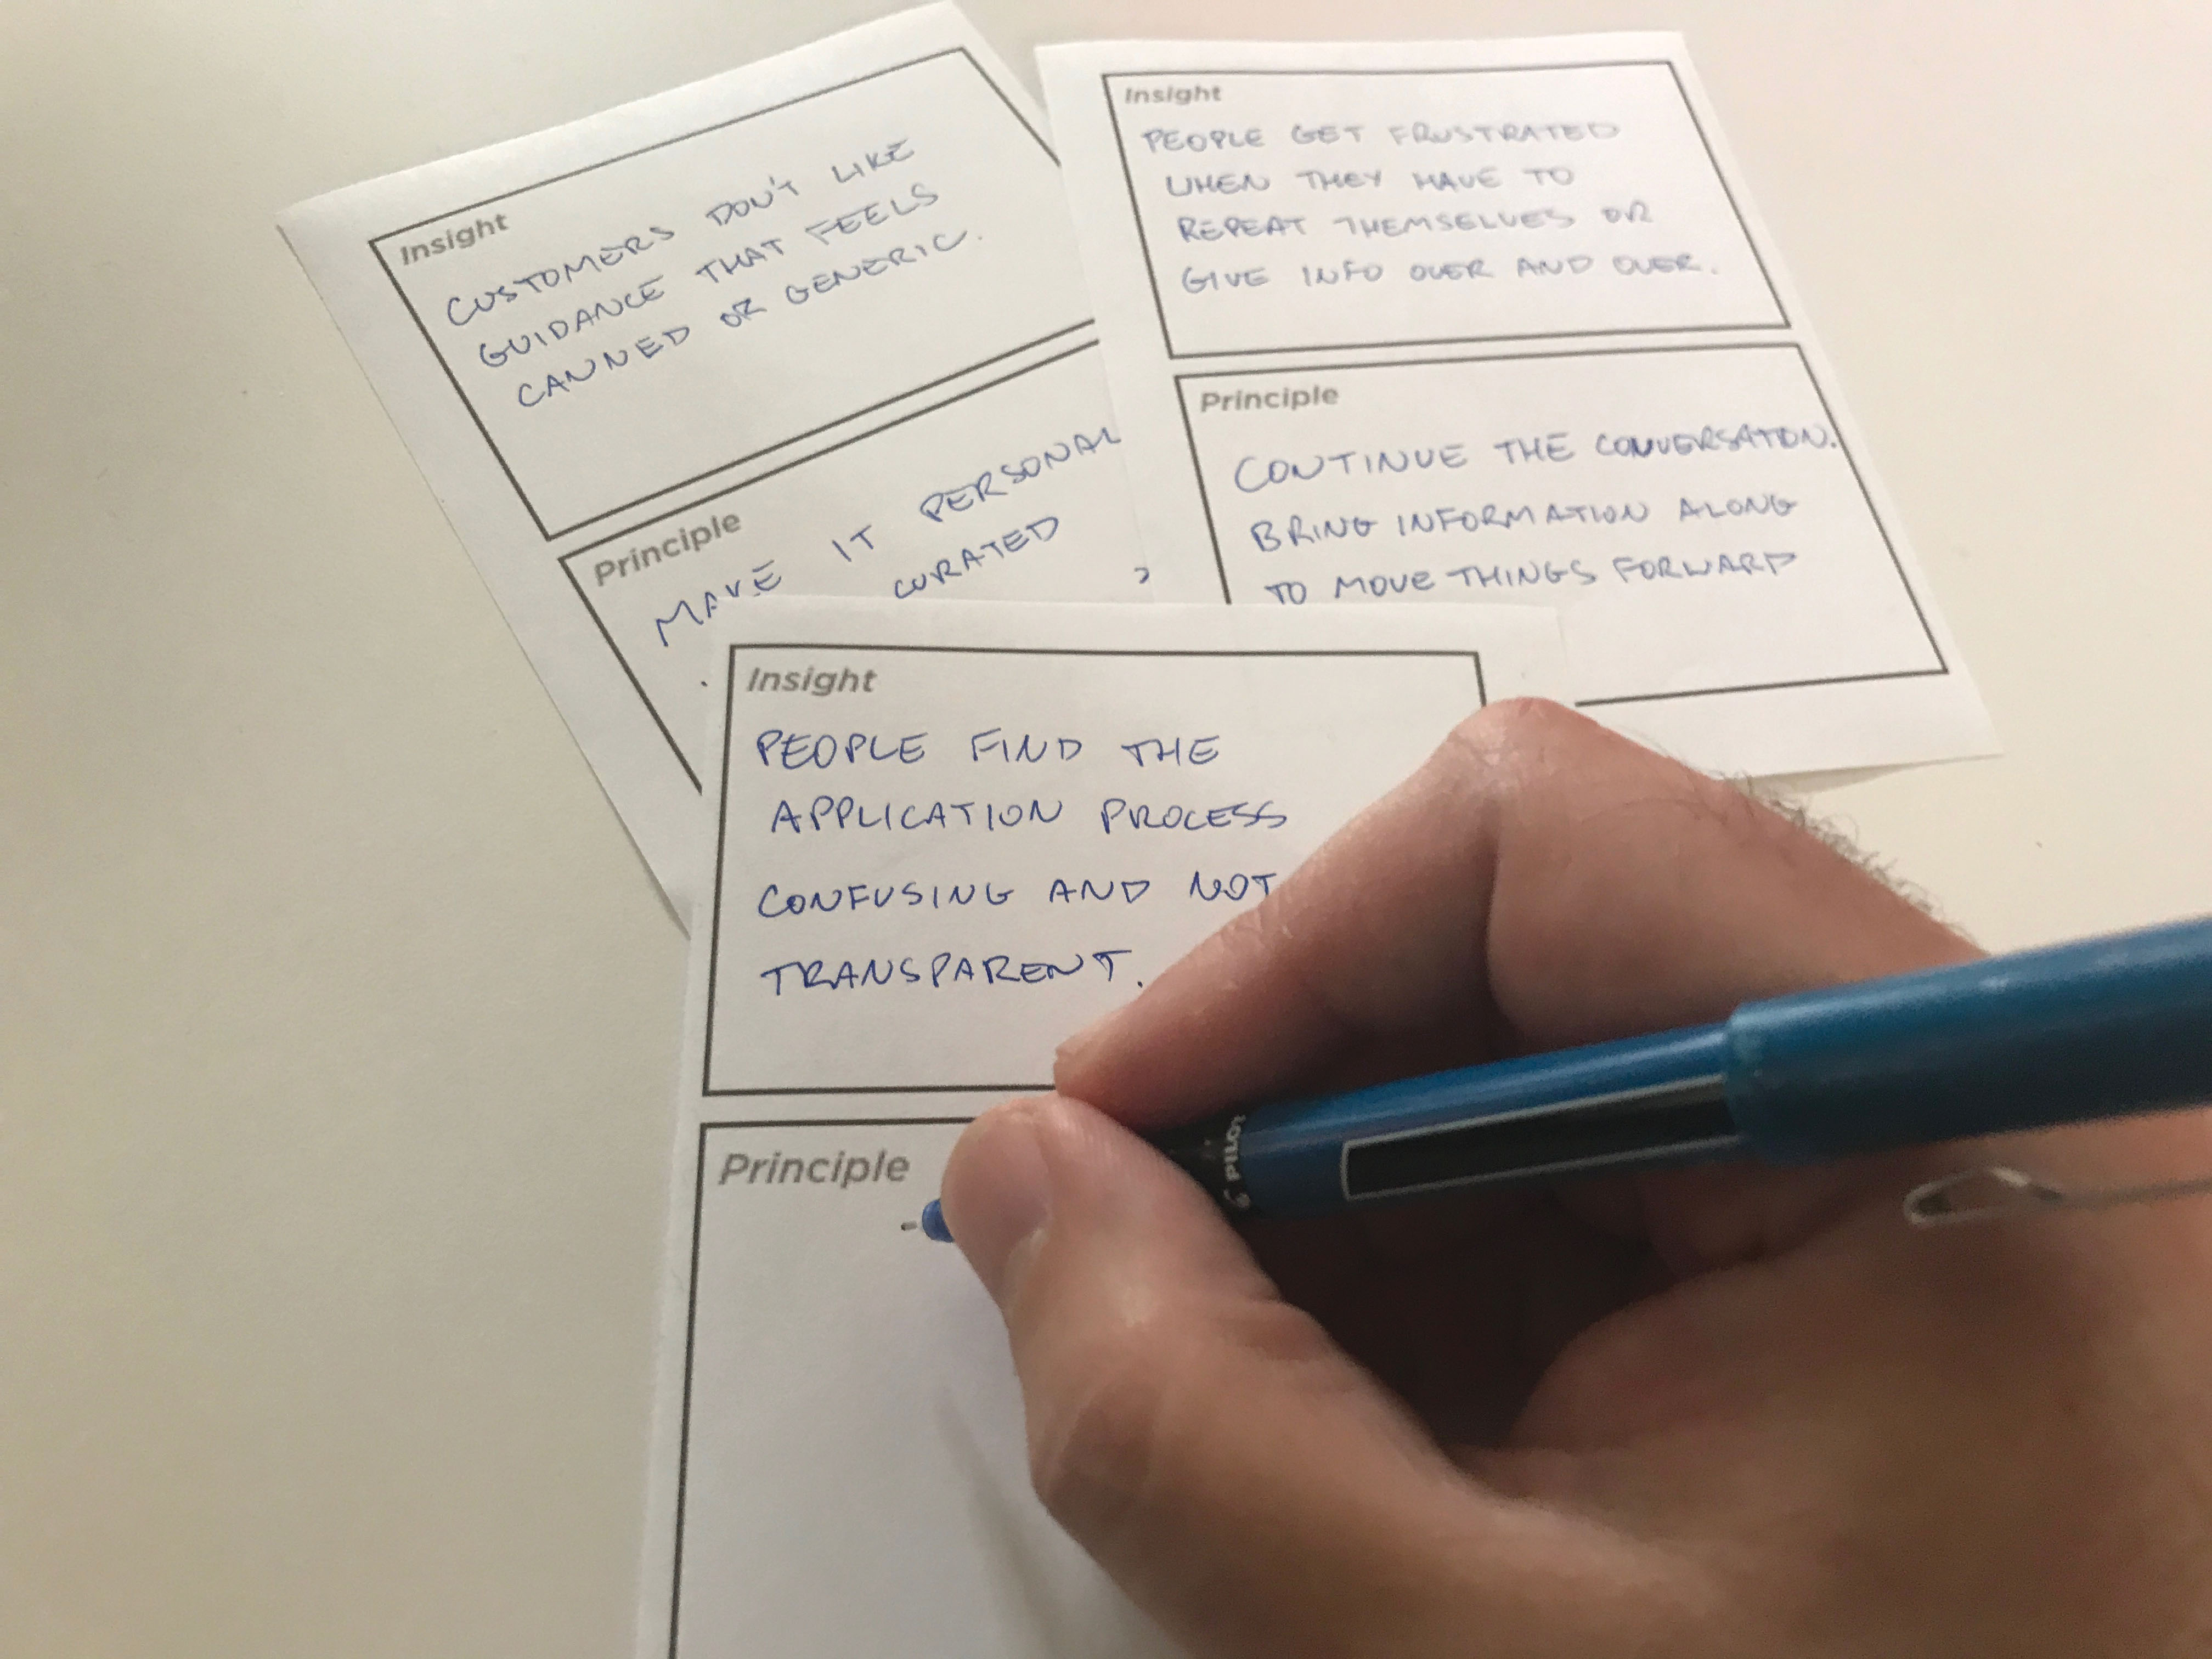 A hand with a pen writes notes with insights and corresponding principles